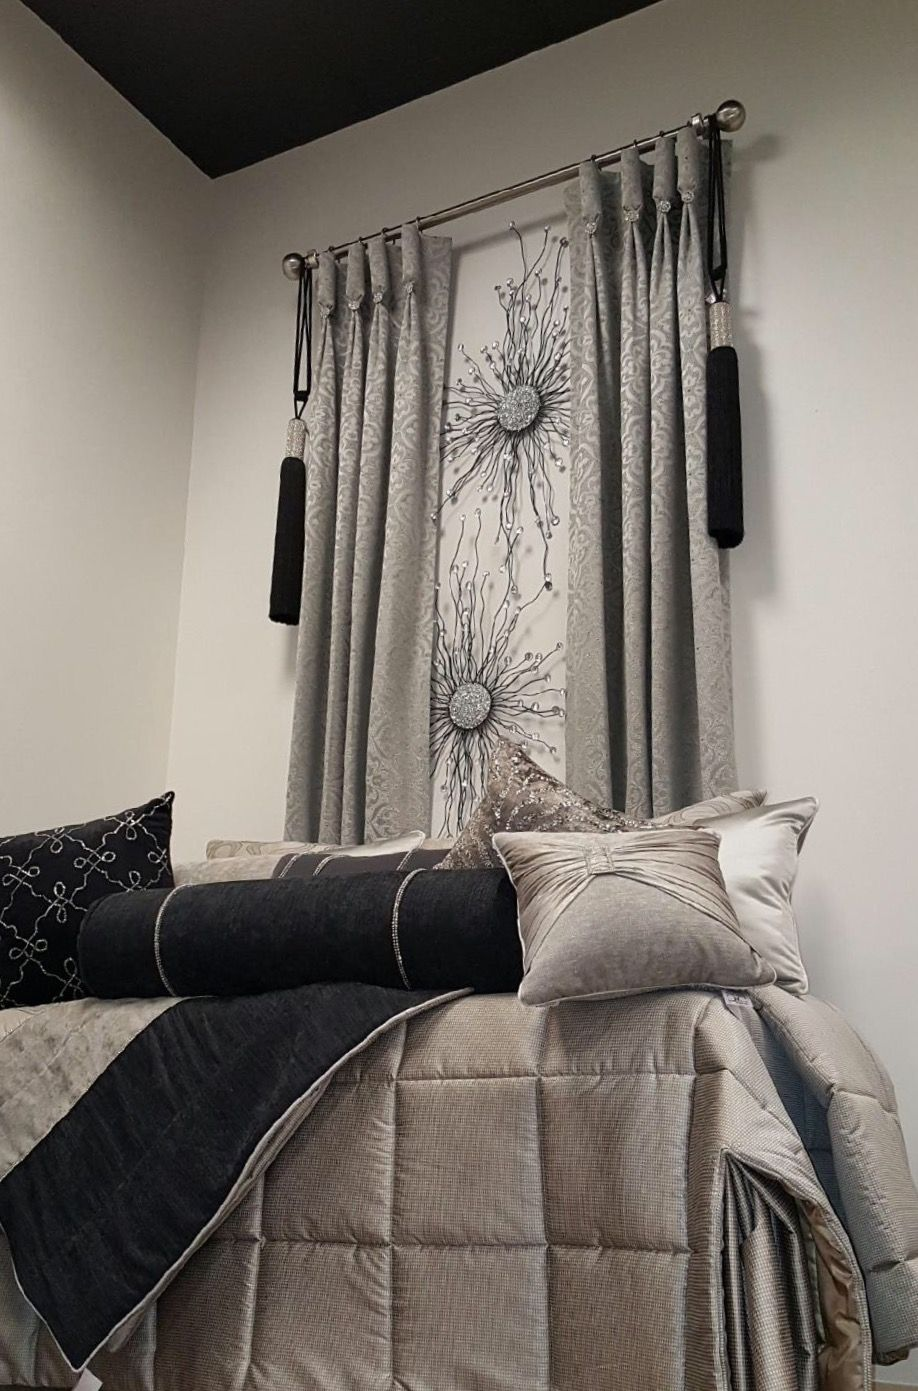 Custom Design Window Shades, motorized blinds in McAllen Texas and the Rio Grande Valley. #newhomes #rgvhomes #mcallenbuilders